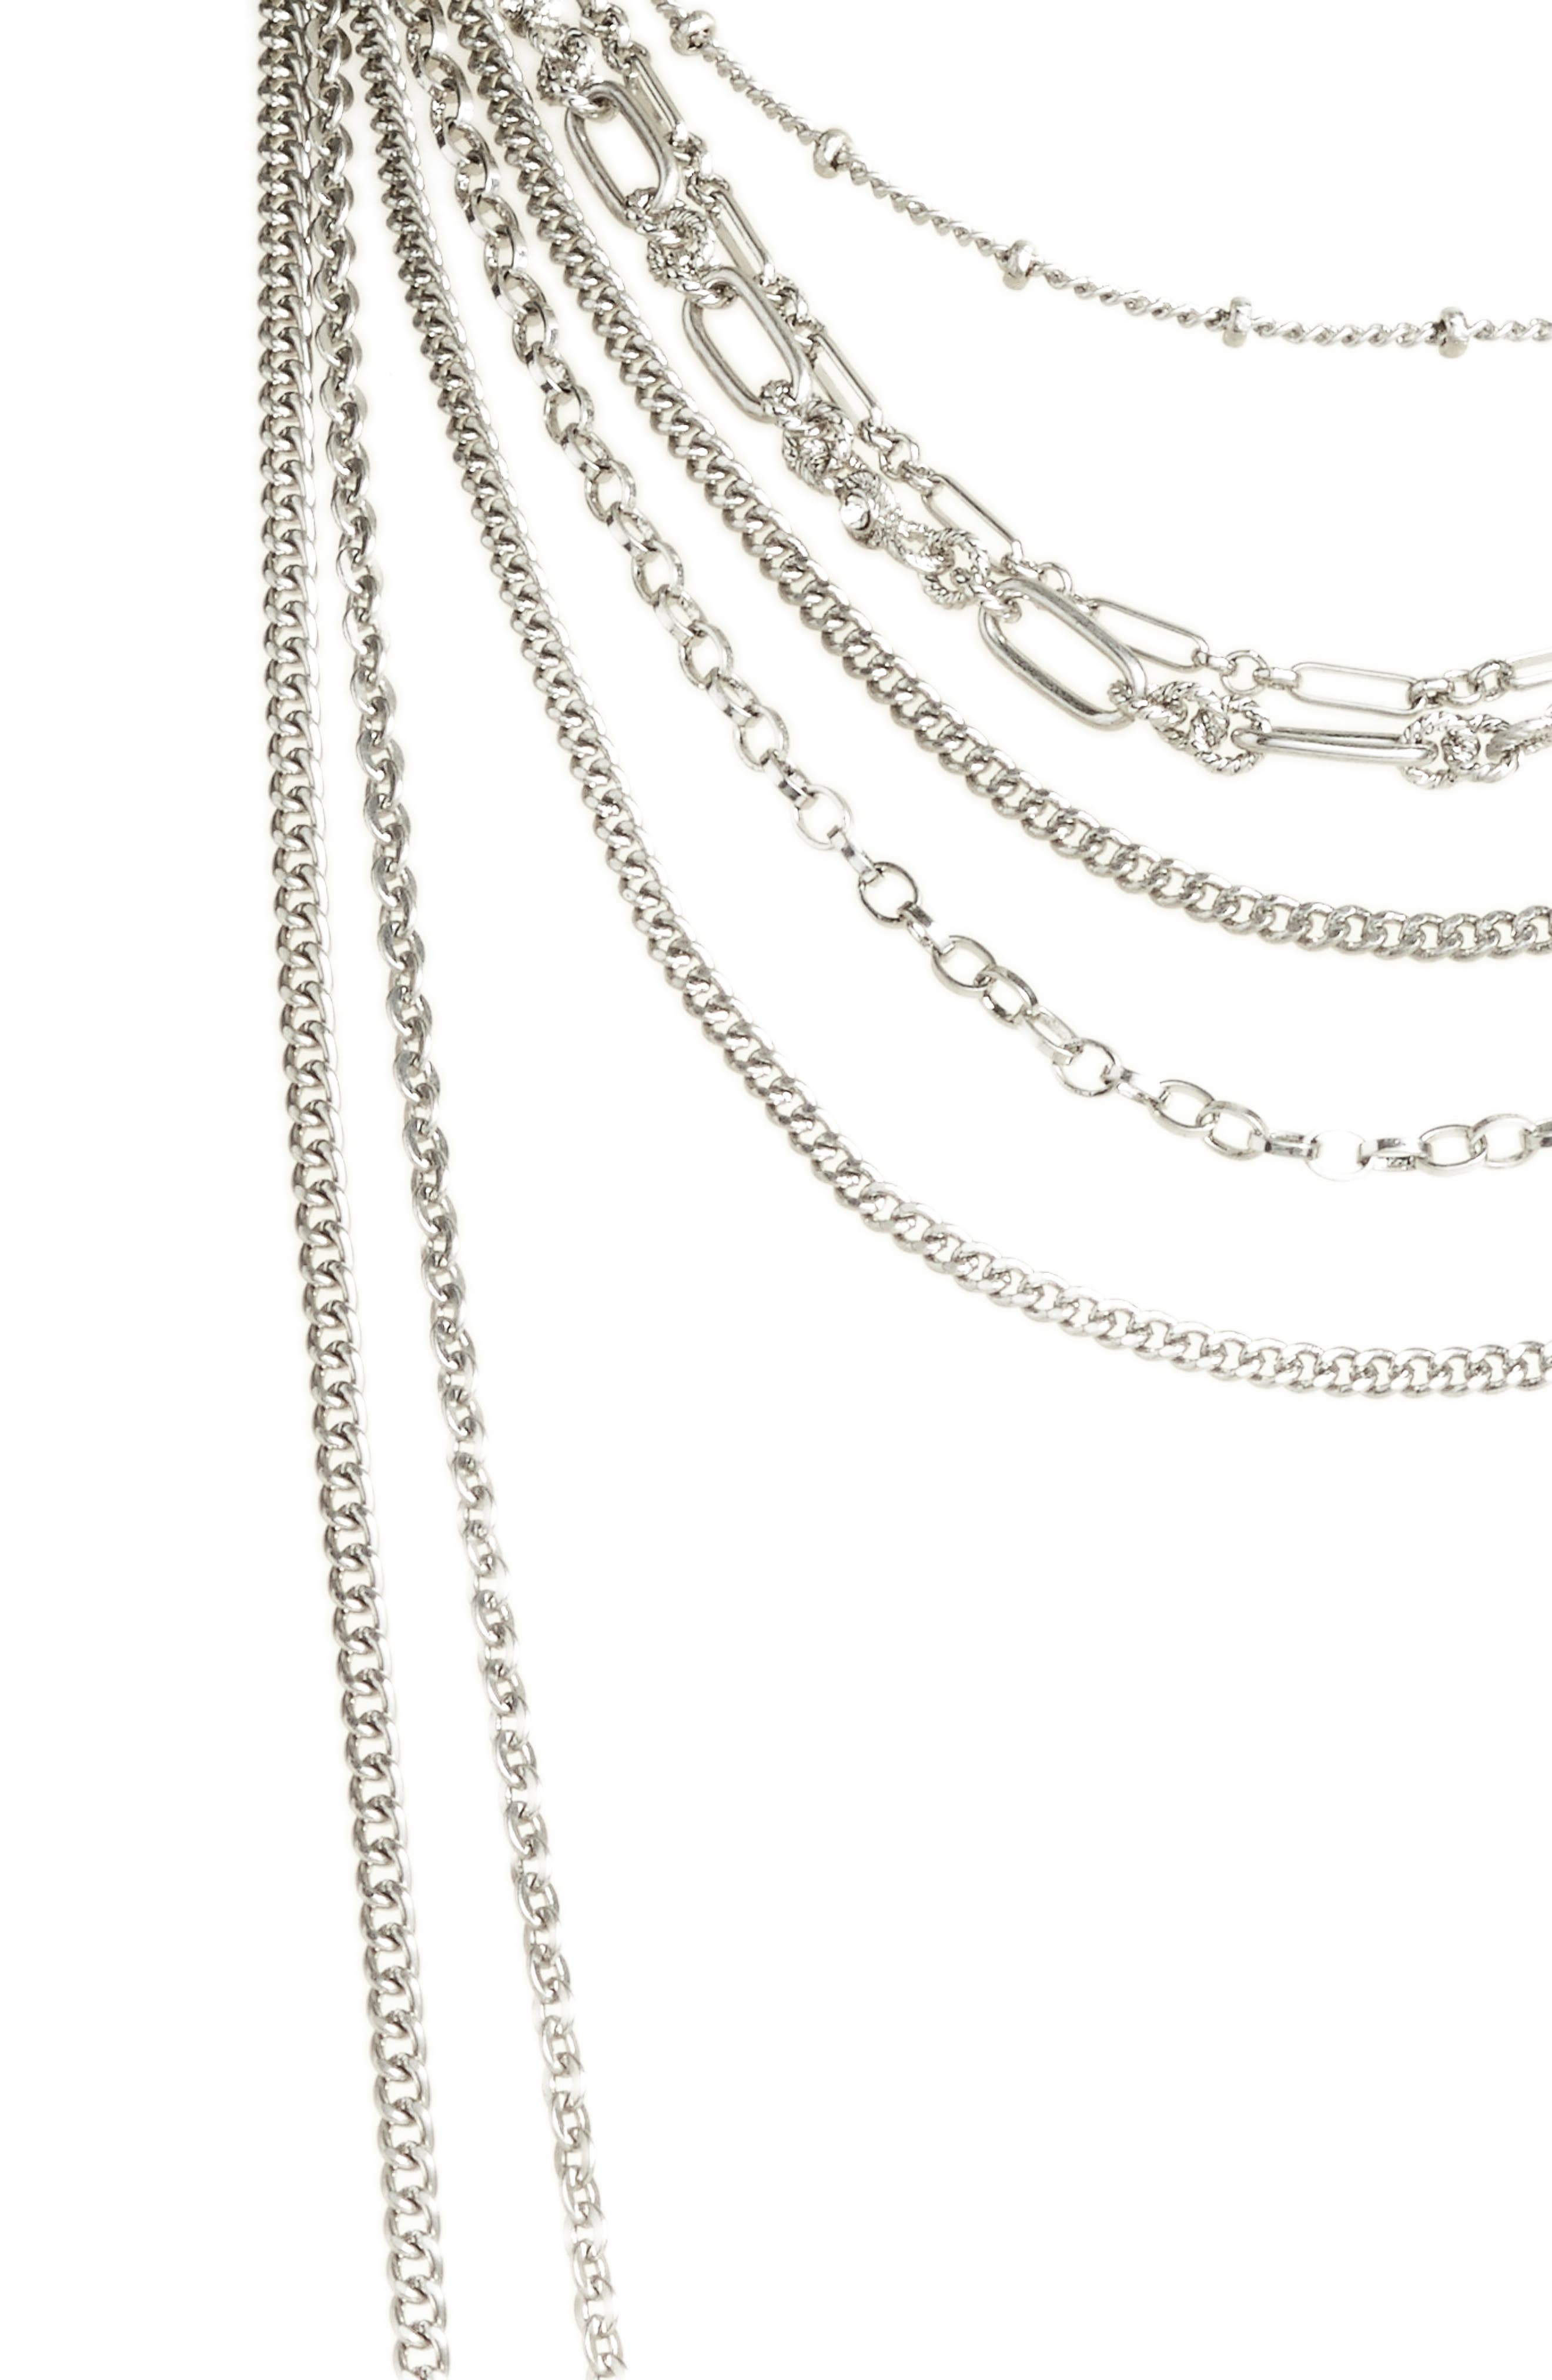 Multistrand Textured Chain Necklace,                             Alternate thumbnail 2, color,                             Clear- Rhodium